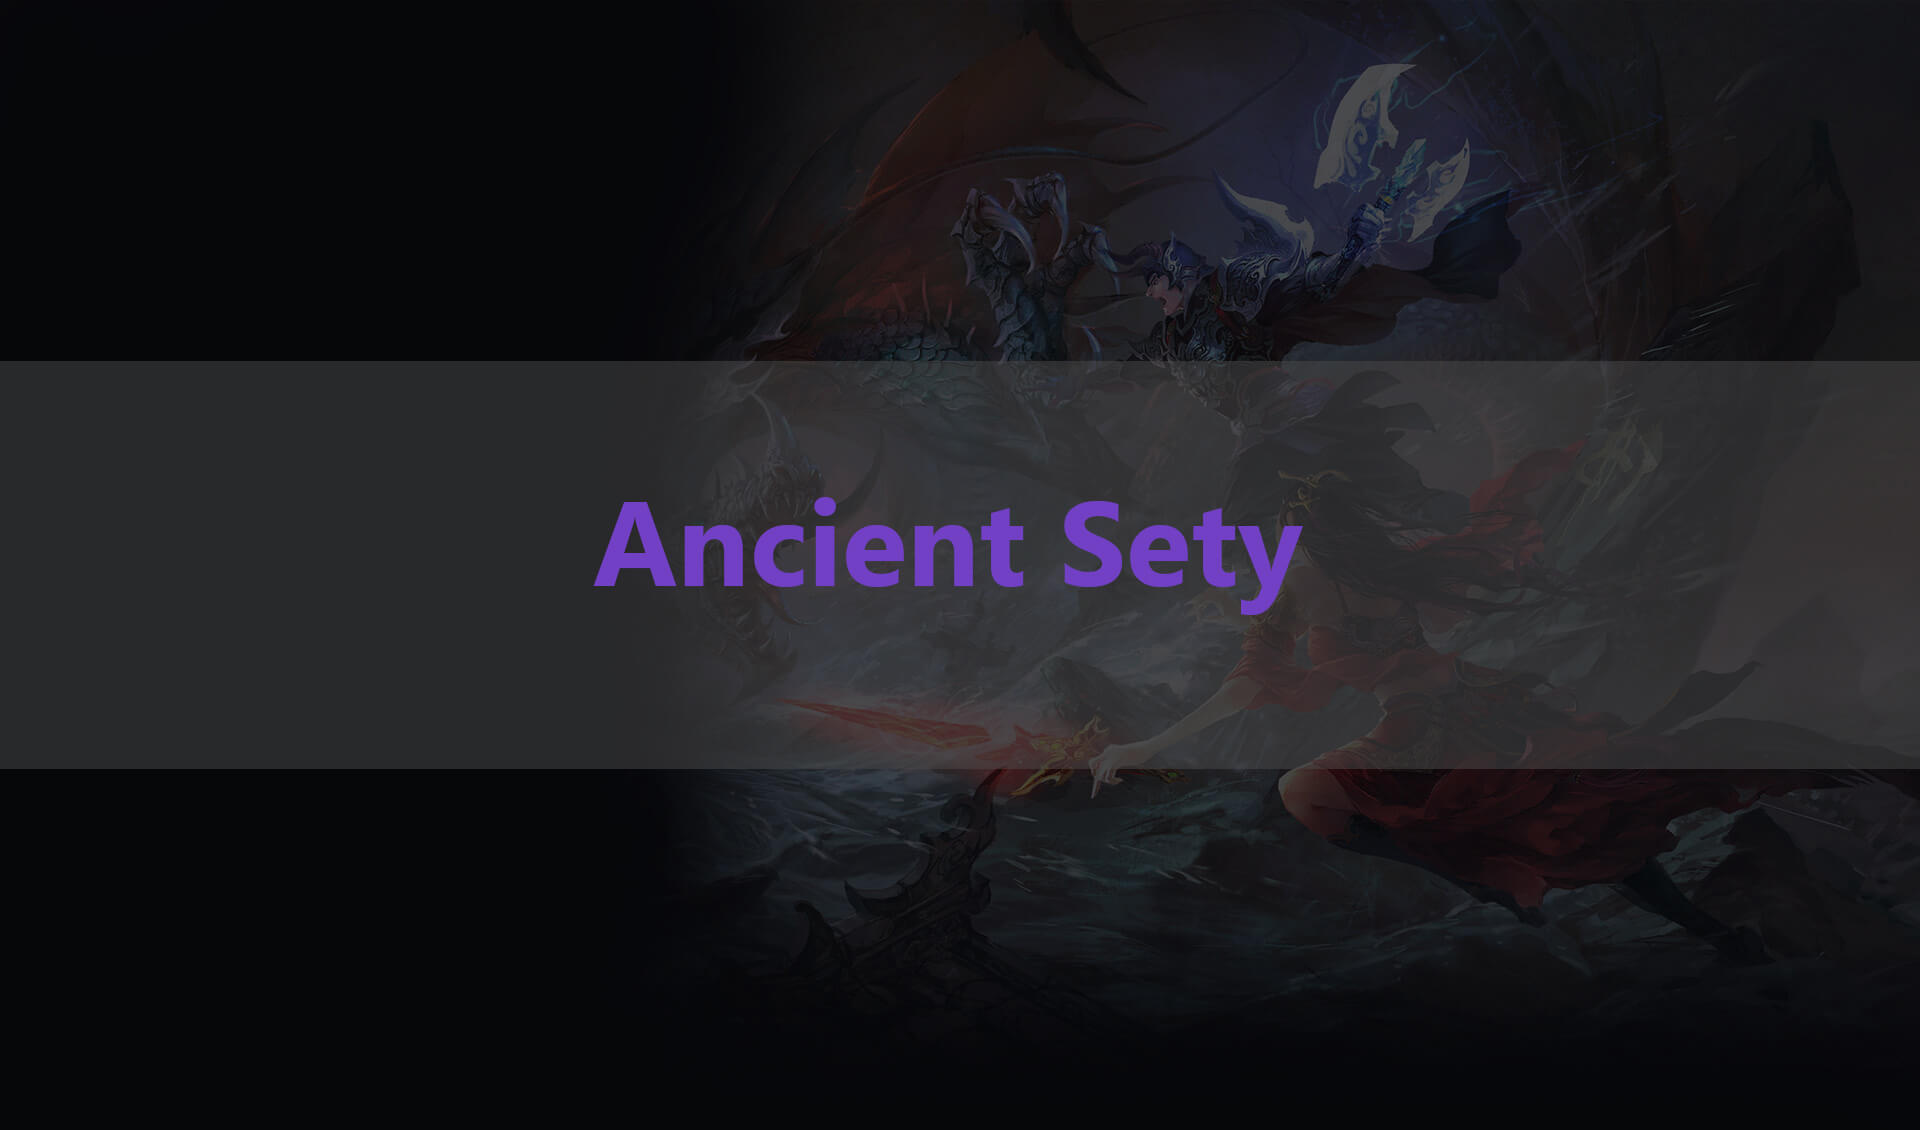 Ancient sety